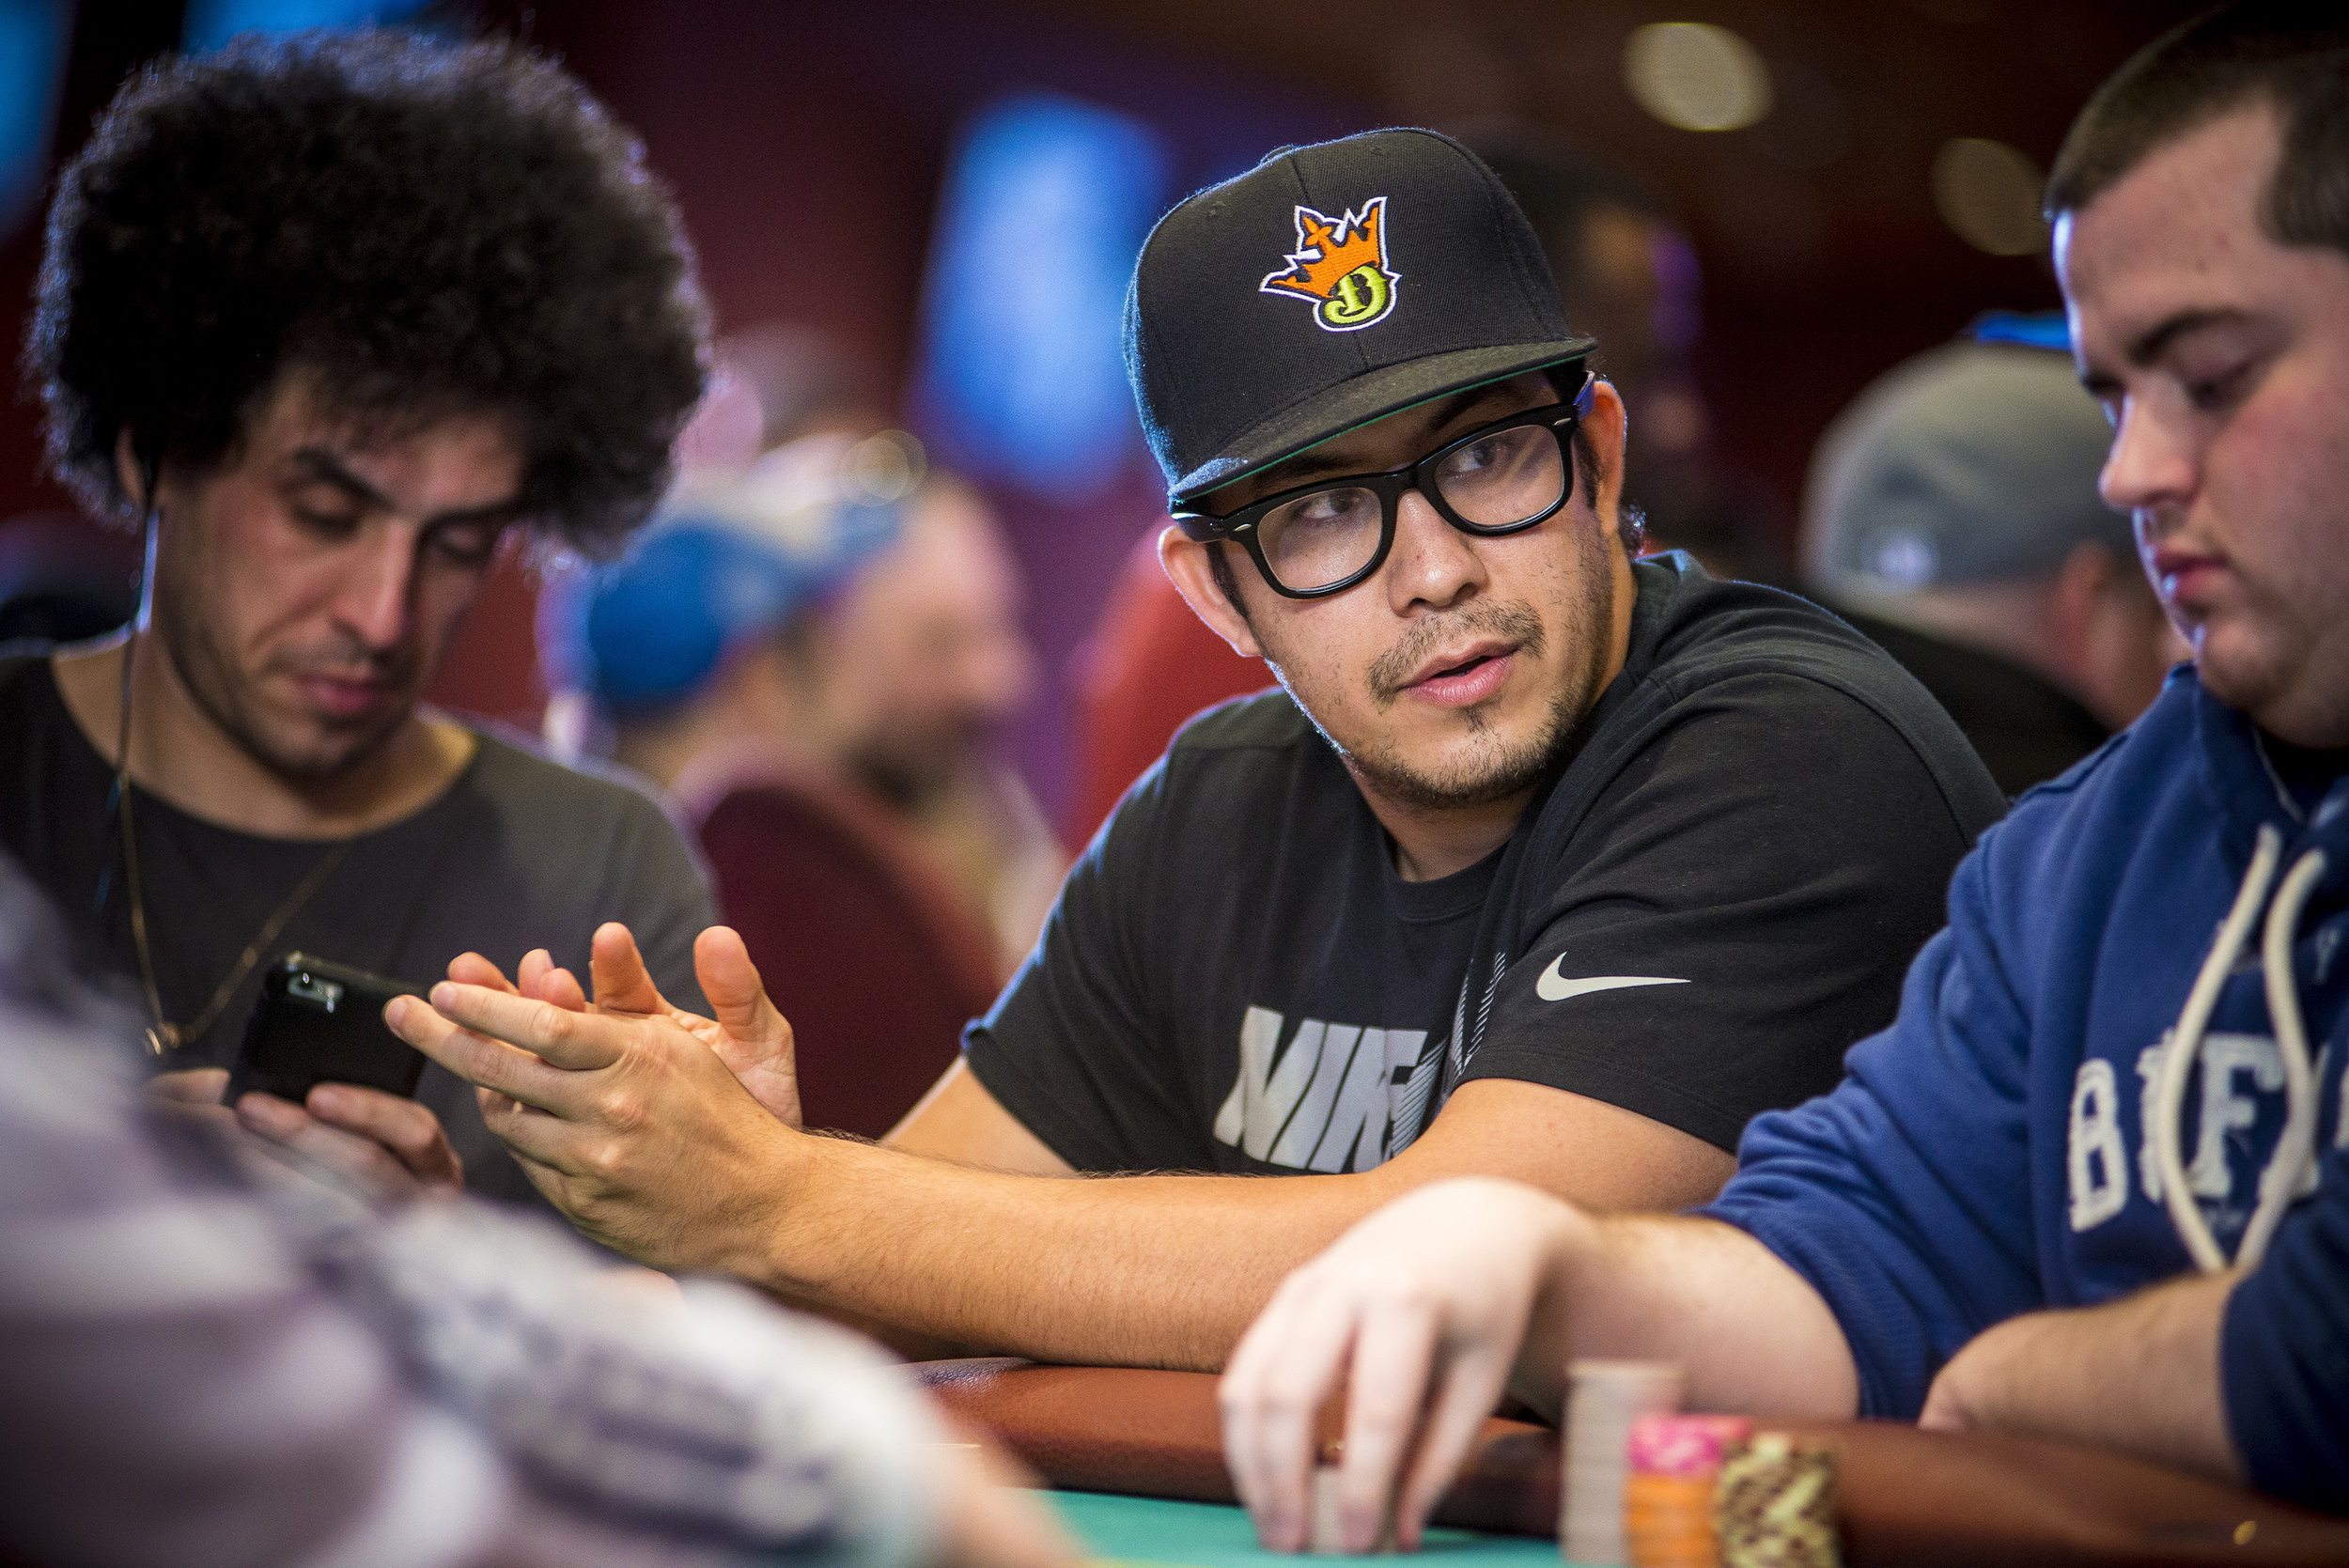 WPTDeepStacks_Phil Hui_Amato_AA46959.jpg